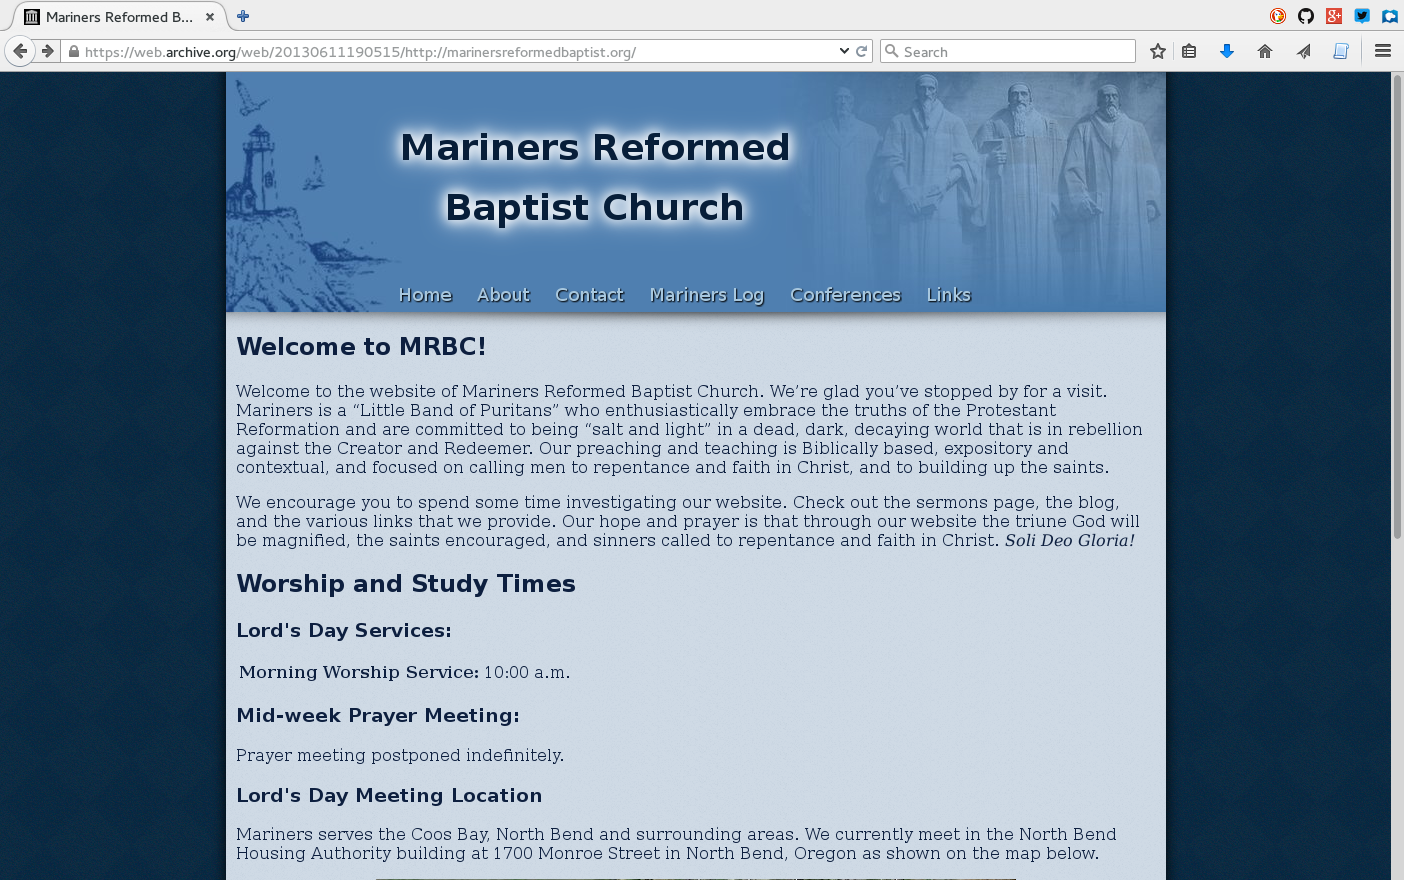 Redesigned front page of the Mariners Reformed Baptist Church website.